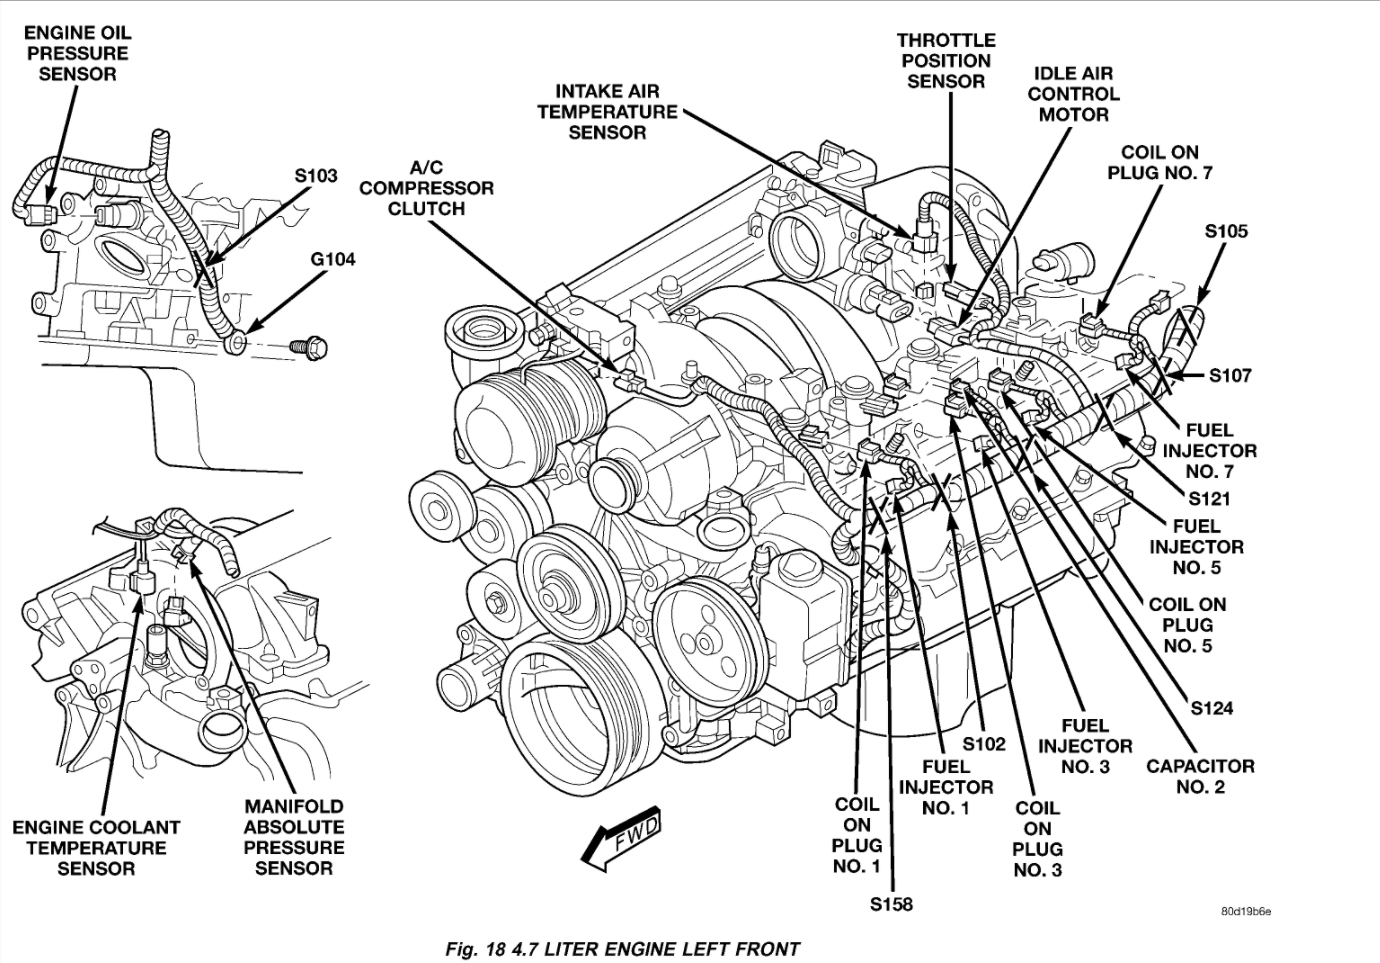 2006 Jeep Liberty Engine Diagram - Center Wiring Diagram fame-gravity -  fame-gravity.iosonointersex.itiosonointersex.it